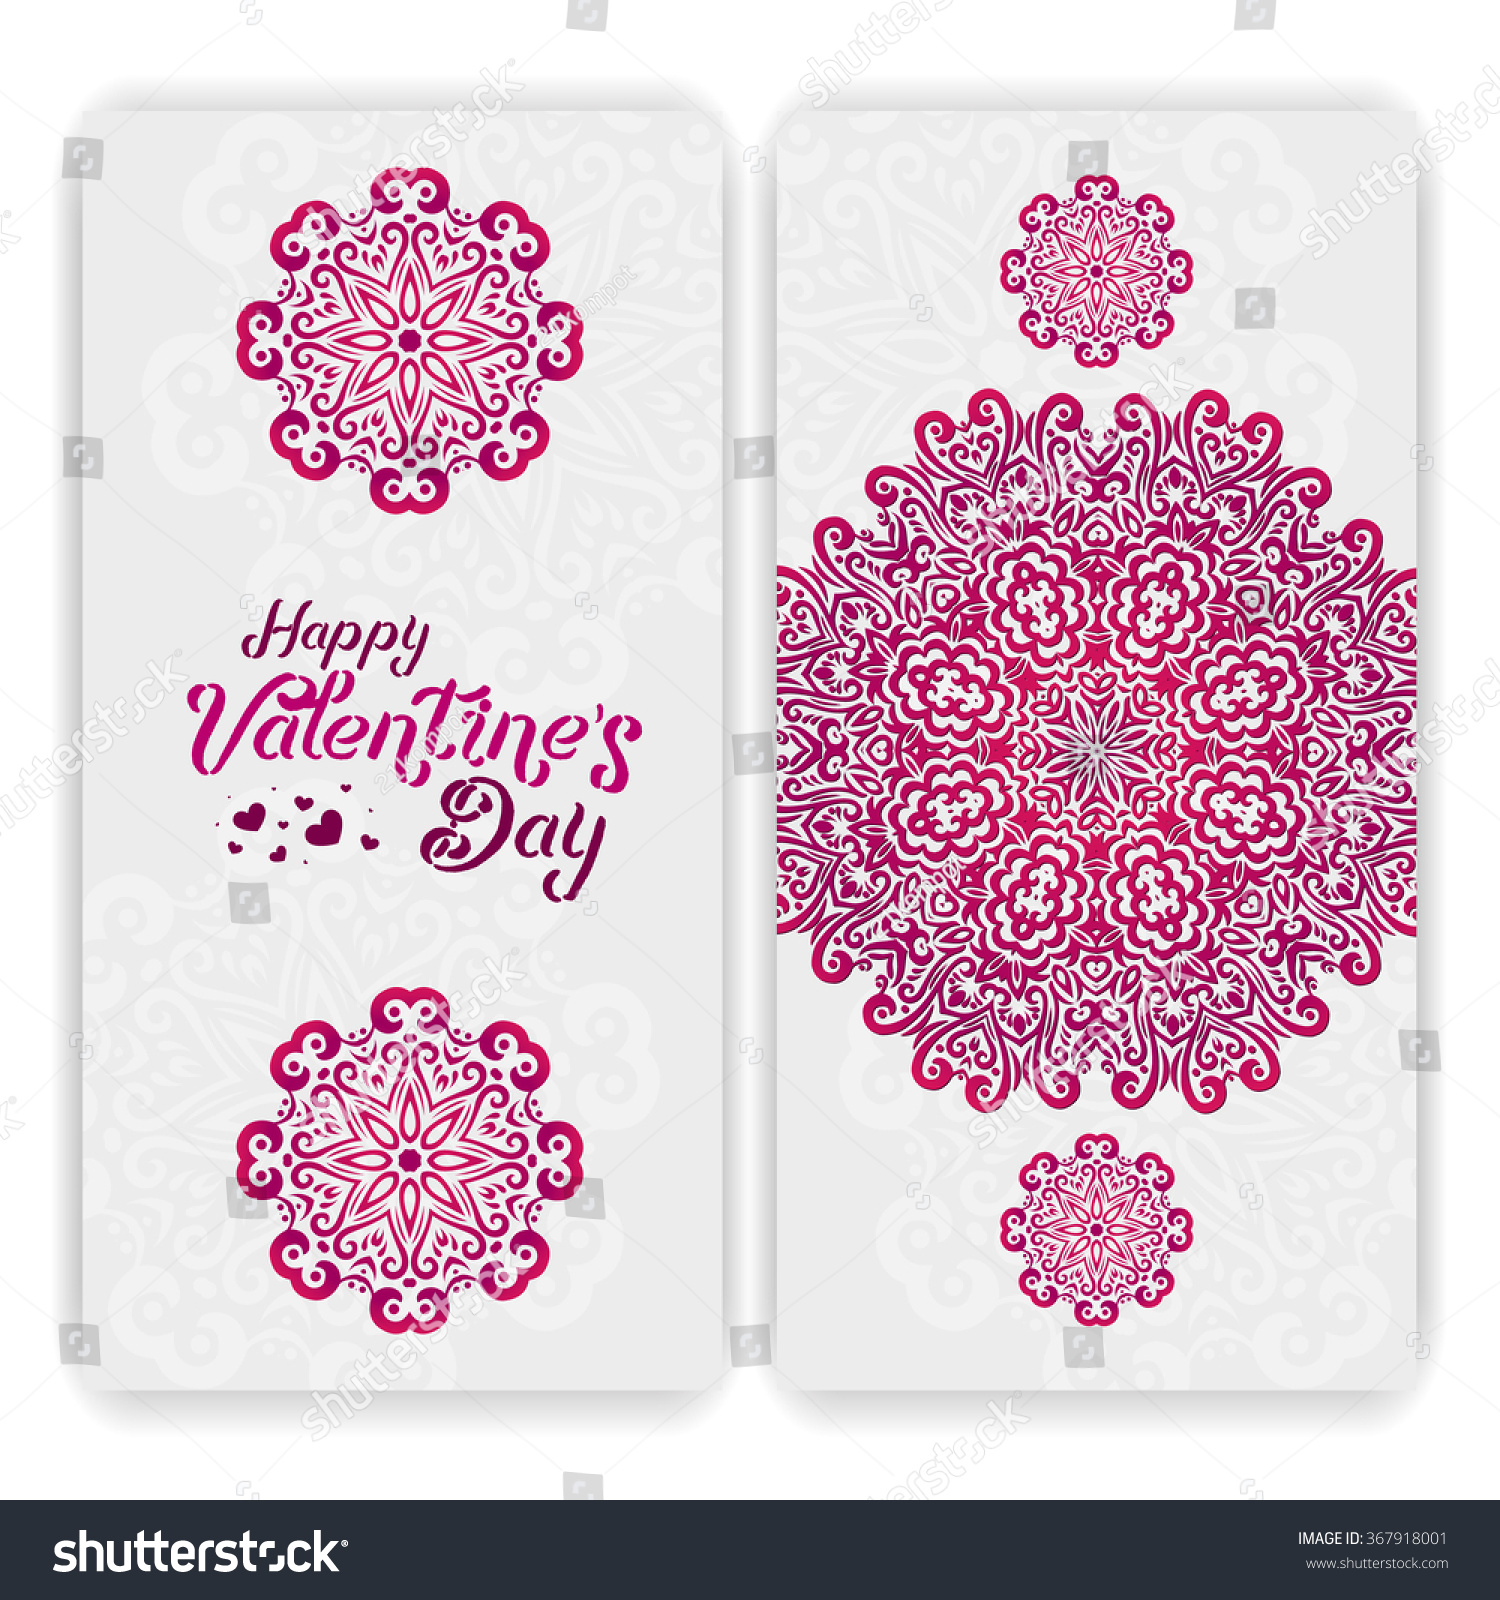 Valentines Day Card Template Lacy Romantic Stock Vector Royalty